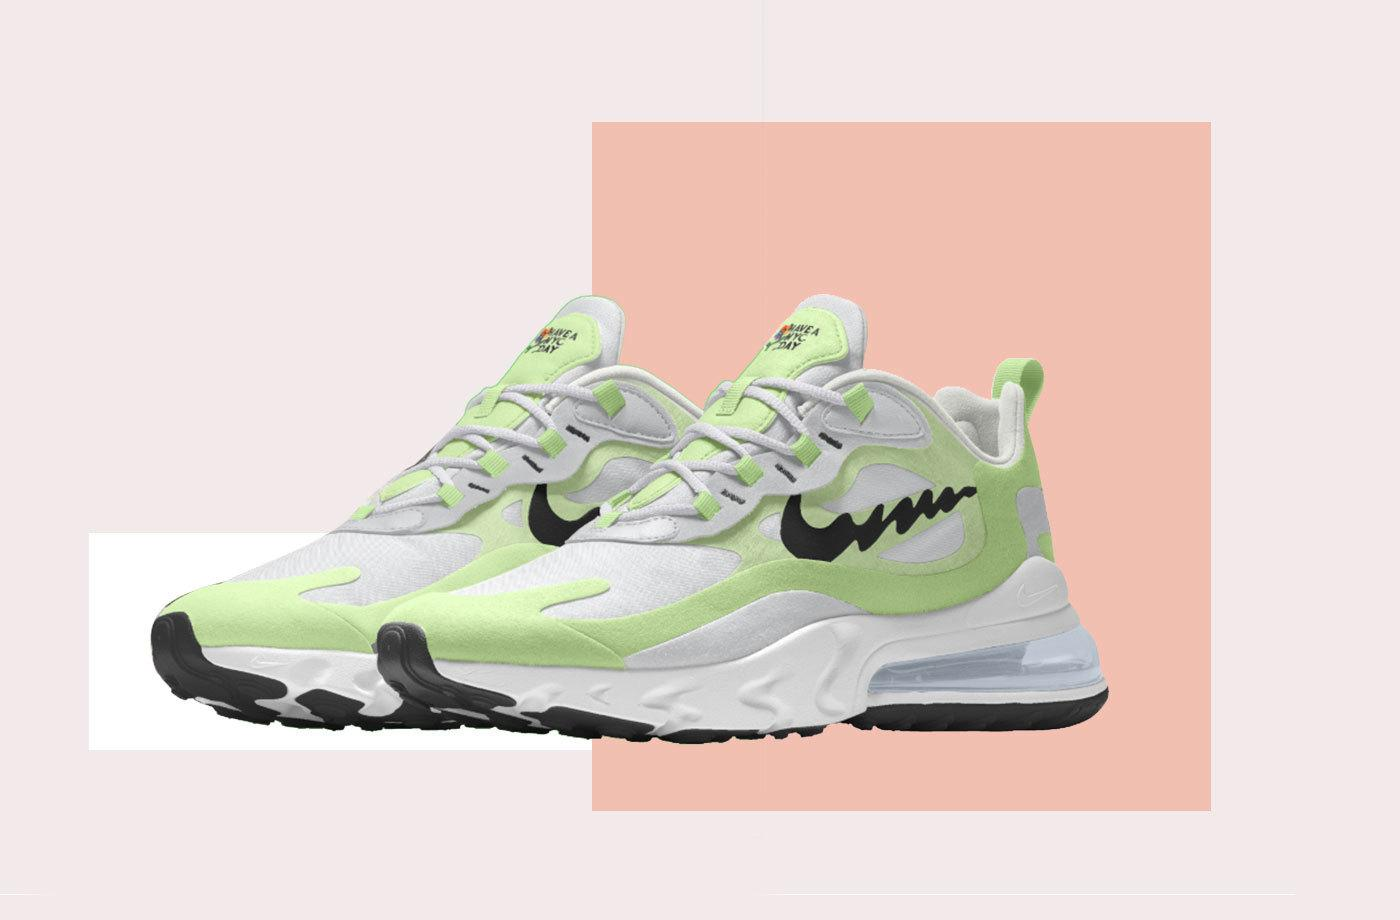 Thumbnail for These limited-edition Nikes were created to bring awareness to mental health